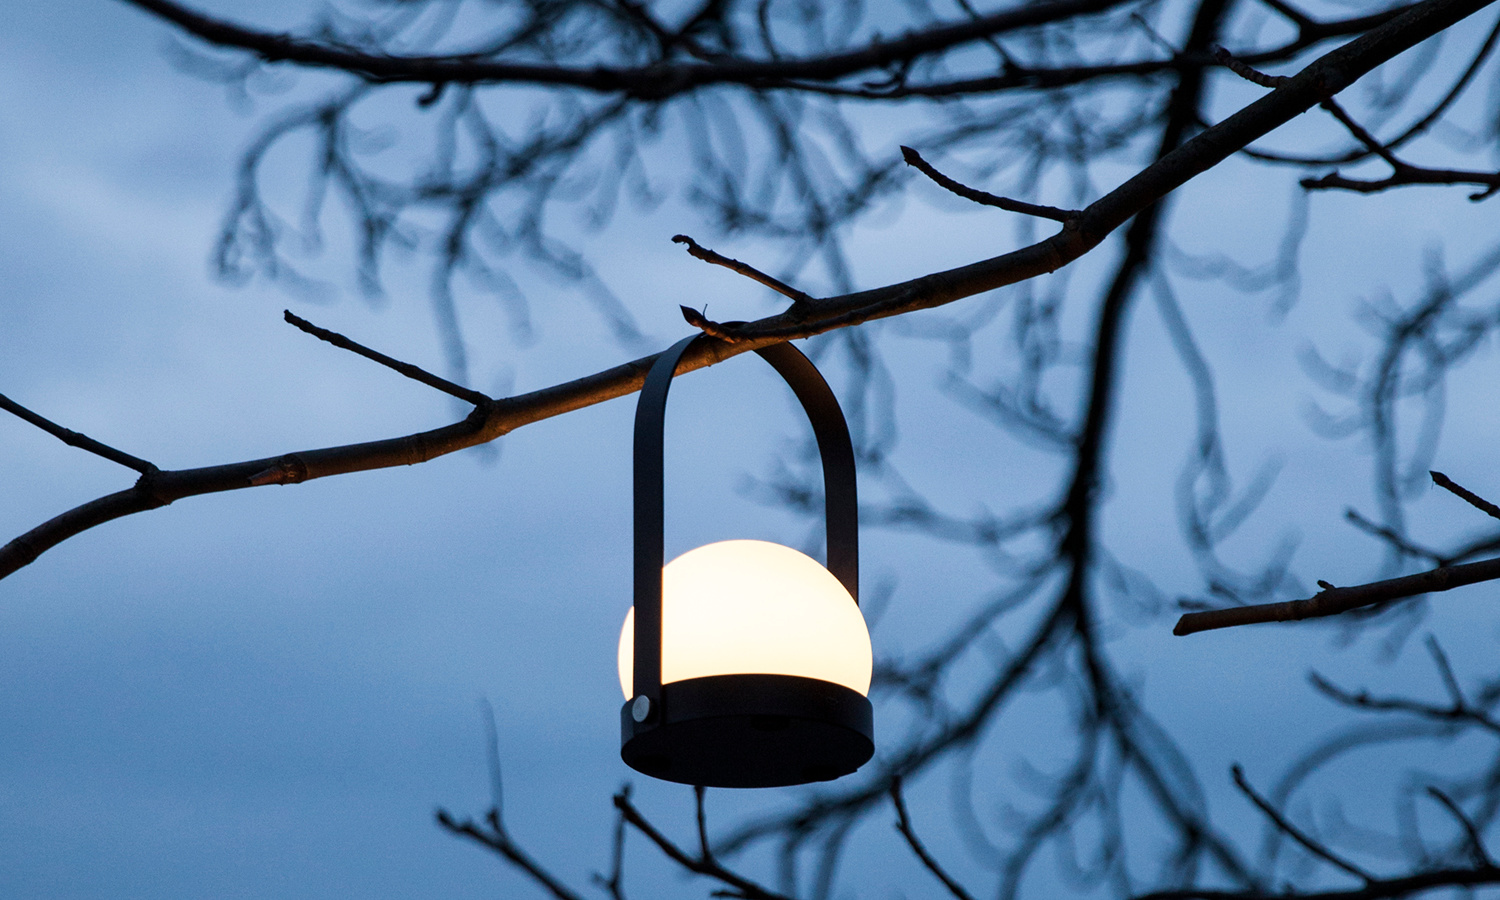 Portable light hanging from tree